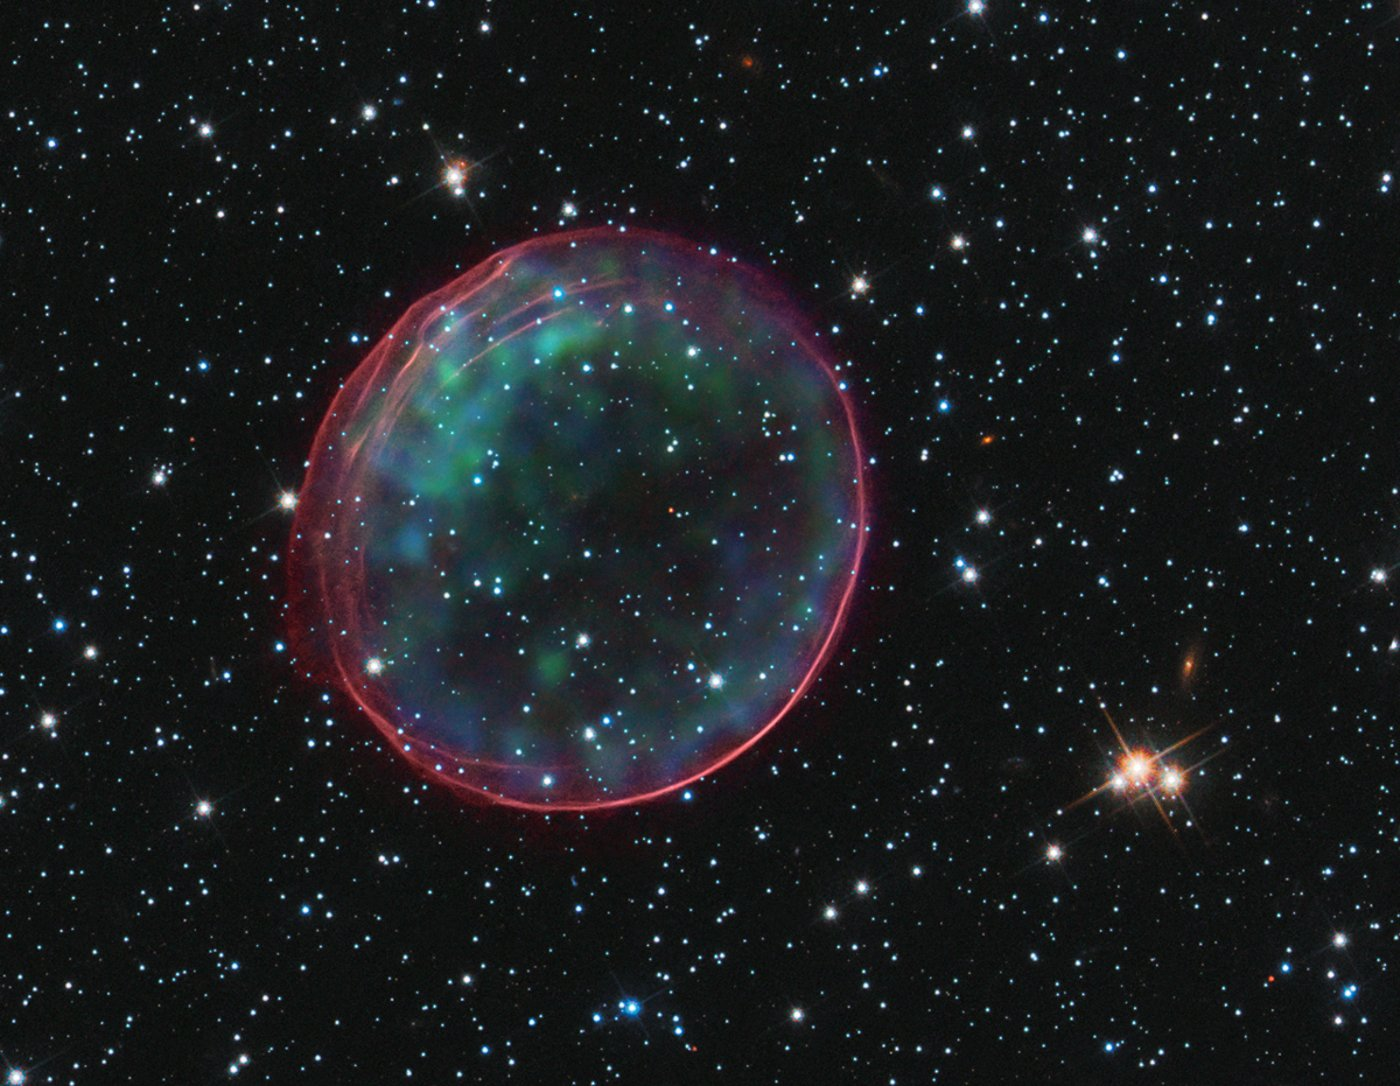 an analysis of a supernova occurrence in the space of our galaxy Amateur astronomers have made some pretty amazing observations in the past now, an argentinian amateur astronomer named victor buso is thanking his lucky stars, after capturing on camera the very moment a star went supernova.